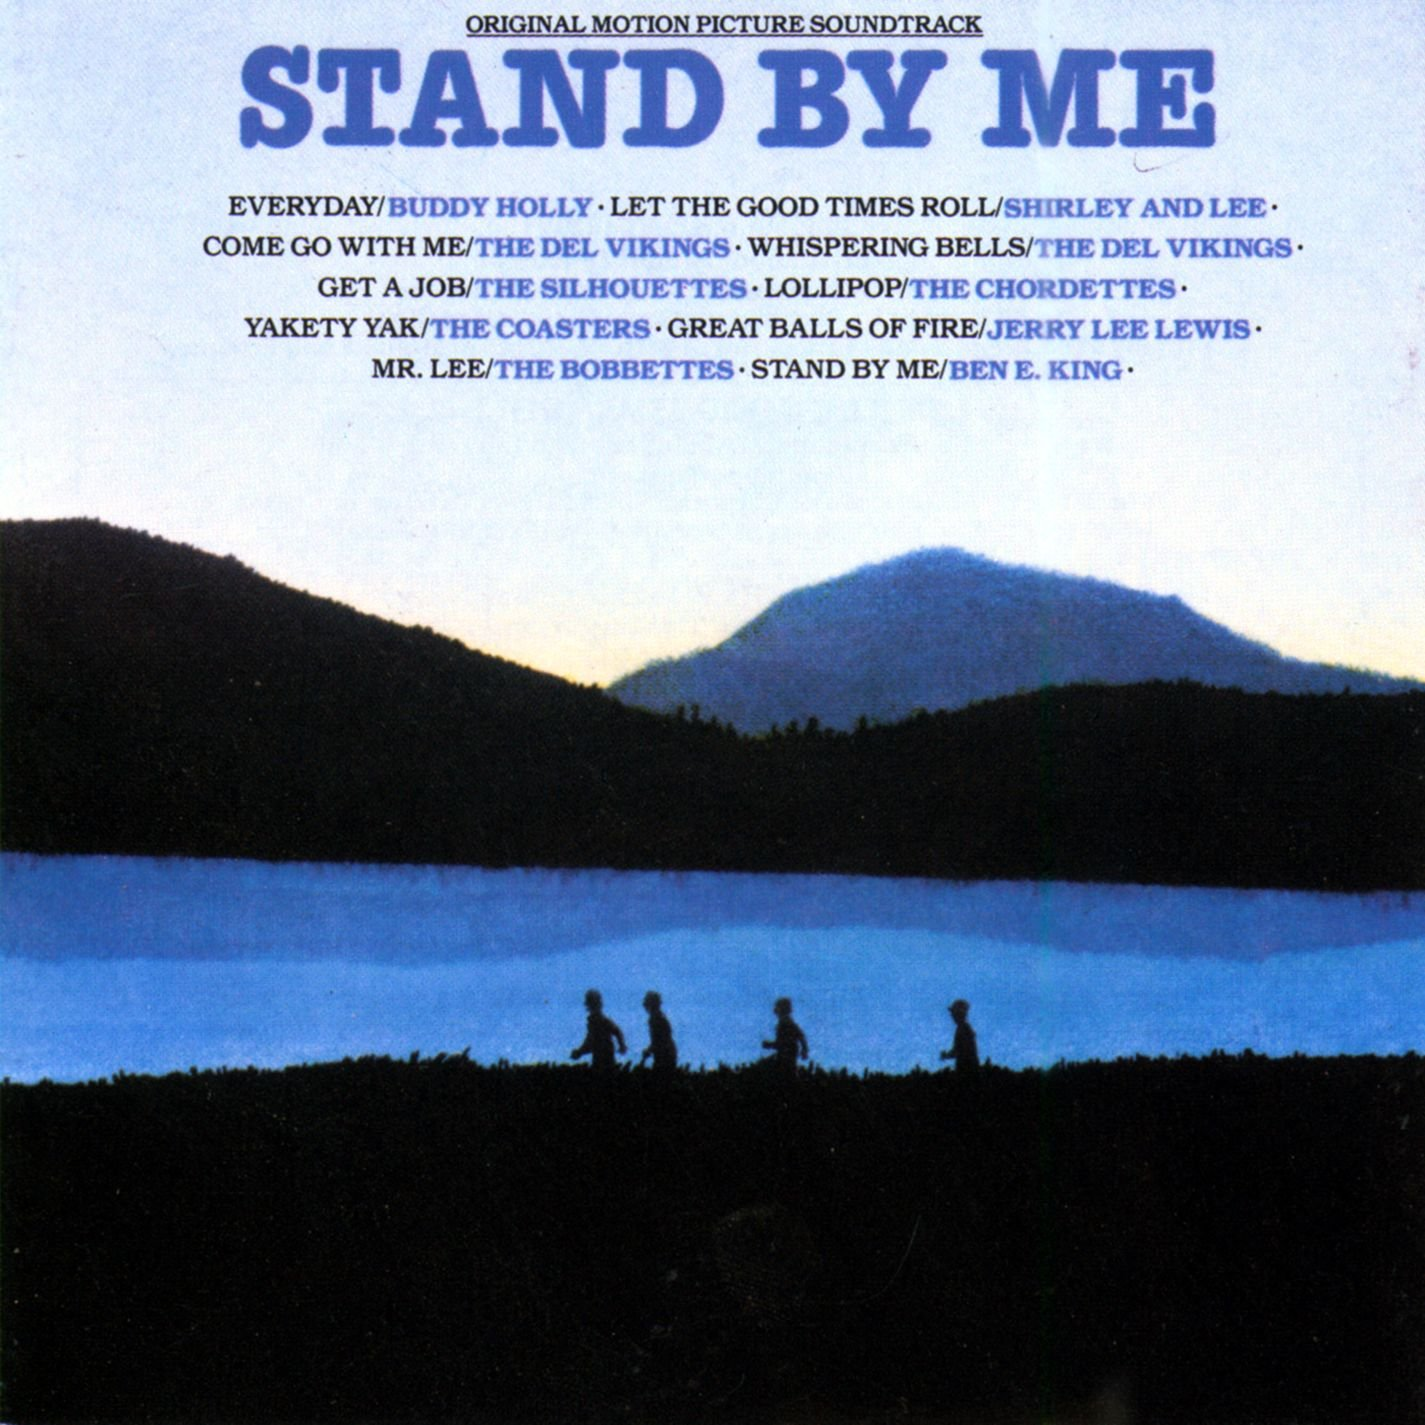 Stand By Me: Original Motion Picture Soundtrack by Atlantic (Label)